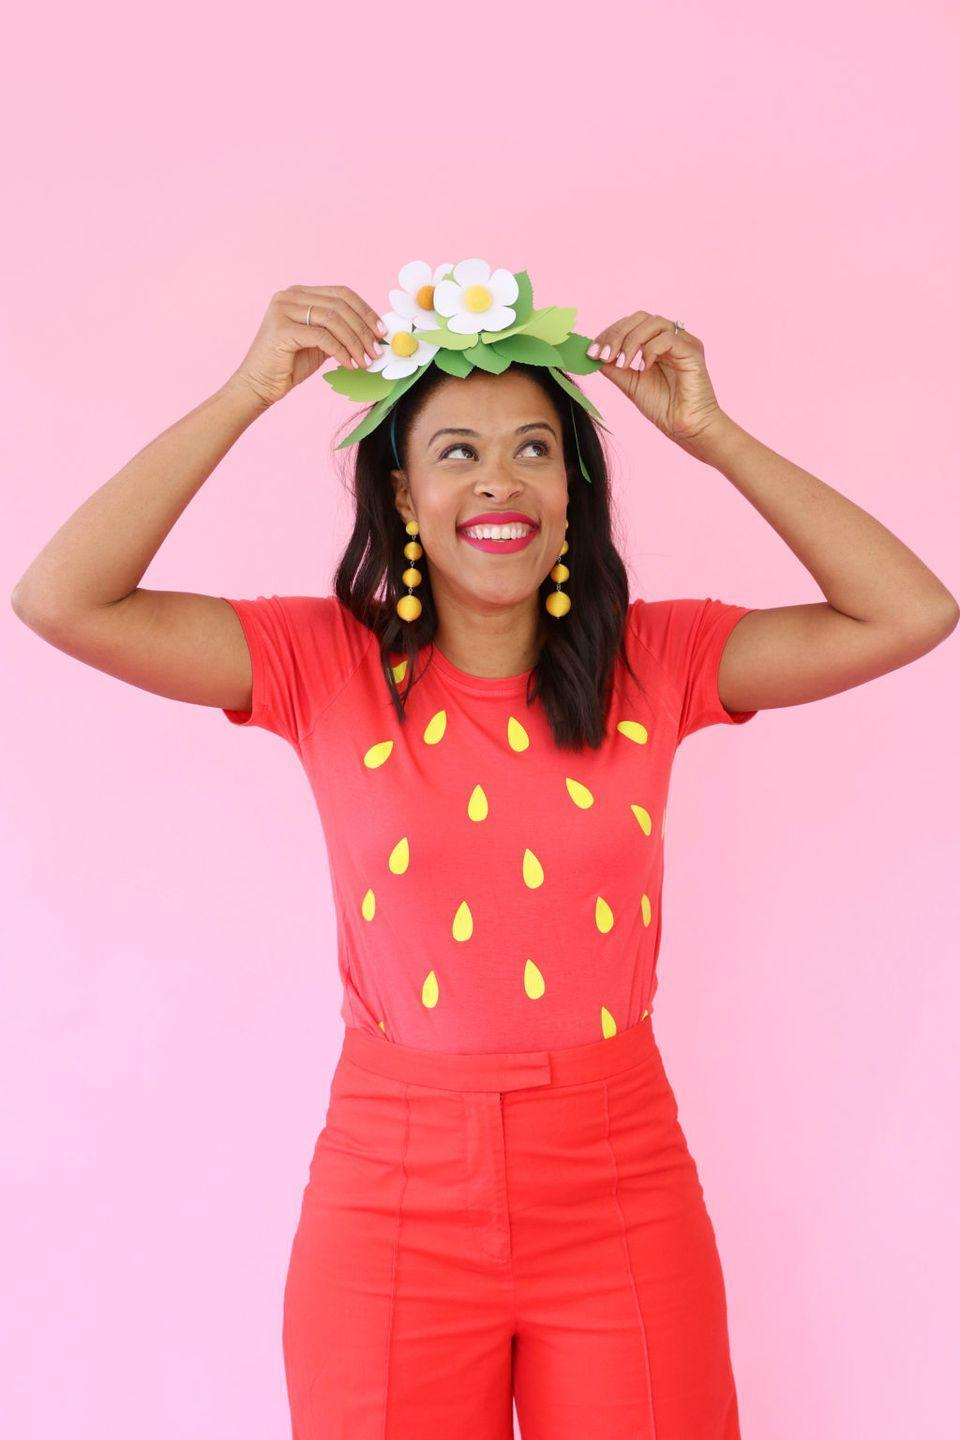 """<p>Amber Kemp-Gerstel put together this sweet strawberry look with paper and iron-on vinyl.</p><p><strong>Get the full tutorial at <a href=""""https://damasklove.com/diy-strawberry-halloween-costume/"""" rel=""""nofollow noopener"""" target=""""_blank"""" data-ylk=""""slk:Damask Love"""" class=""""link rapid-noclick-resp"""">Damask Love</a>.</strong></p><p><strong><a class=""""link rapid-noclick-resp"""" href=""""https://www.amazon.com/Hanes-Womens-Nano-T-Shirt-Large/dp/B00KRYMB88/ref=sr_1_4?tag=syn-yahoo-20&ascsubtag=%5Bartid%7C10050.g.4571%5Bsrc%7Cyahoo-us"""" rel=""""nofollow noopener"""" target=""""_blank"""" data-ylk=""""slk:Shop Red T-Shirts"""">Shop Red T-Shirts</a><br></strong></p>"""